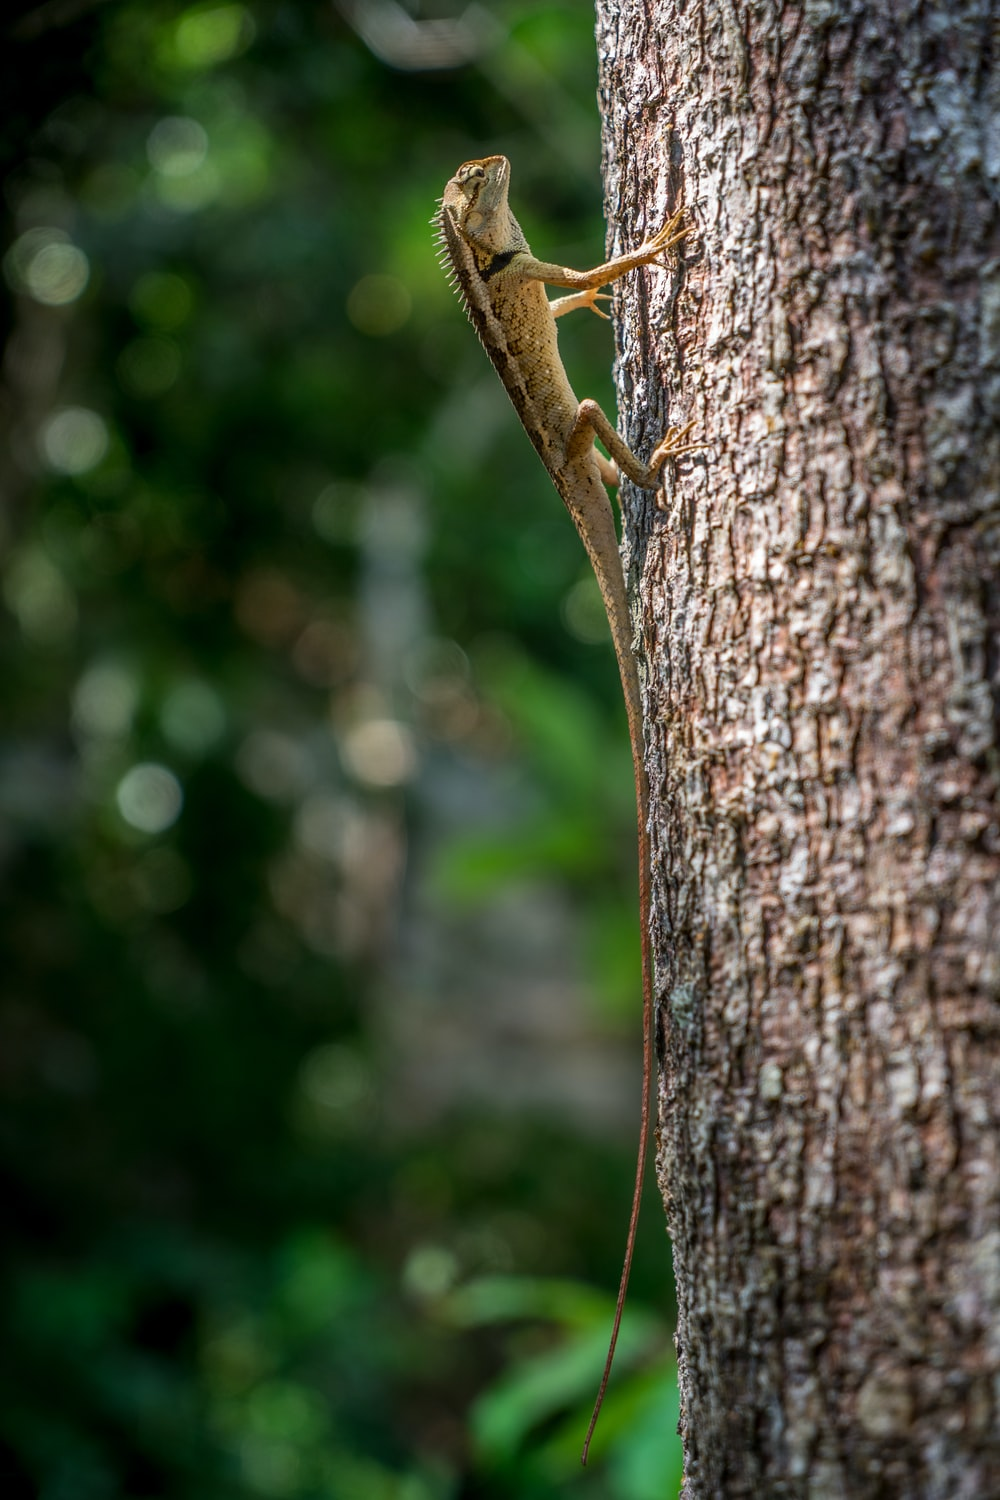 selective focus photography of iguana climbing on tree trunk